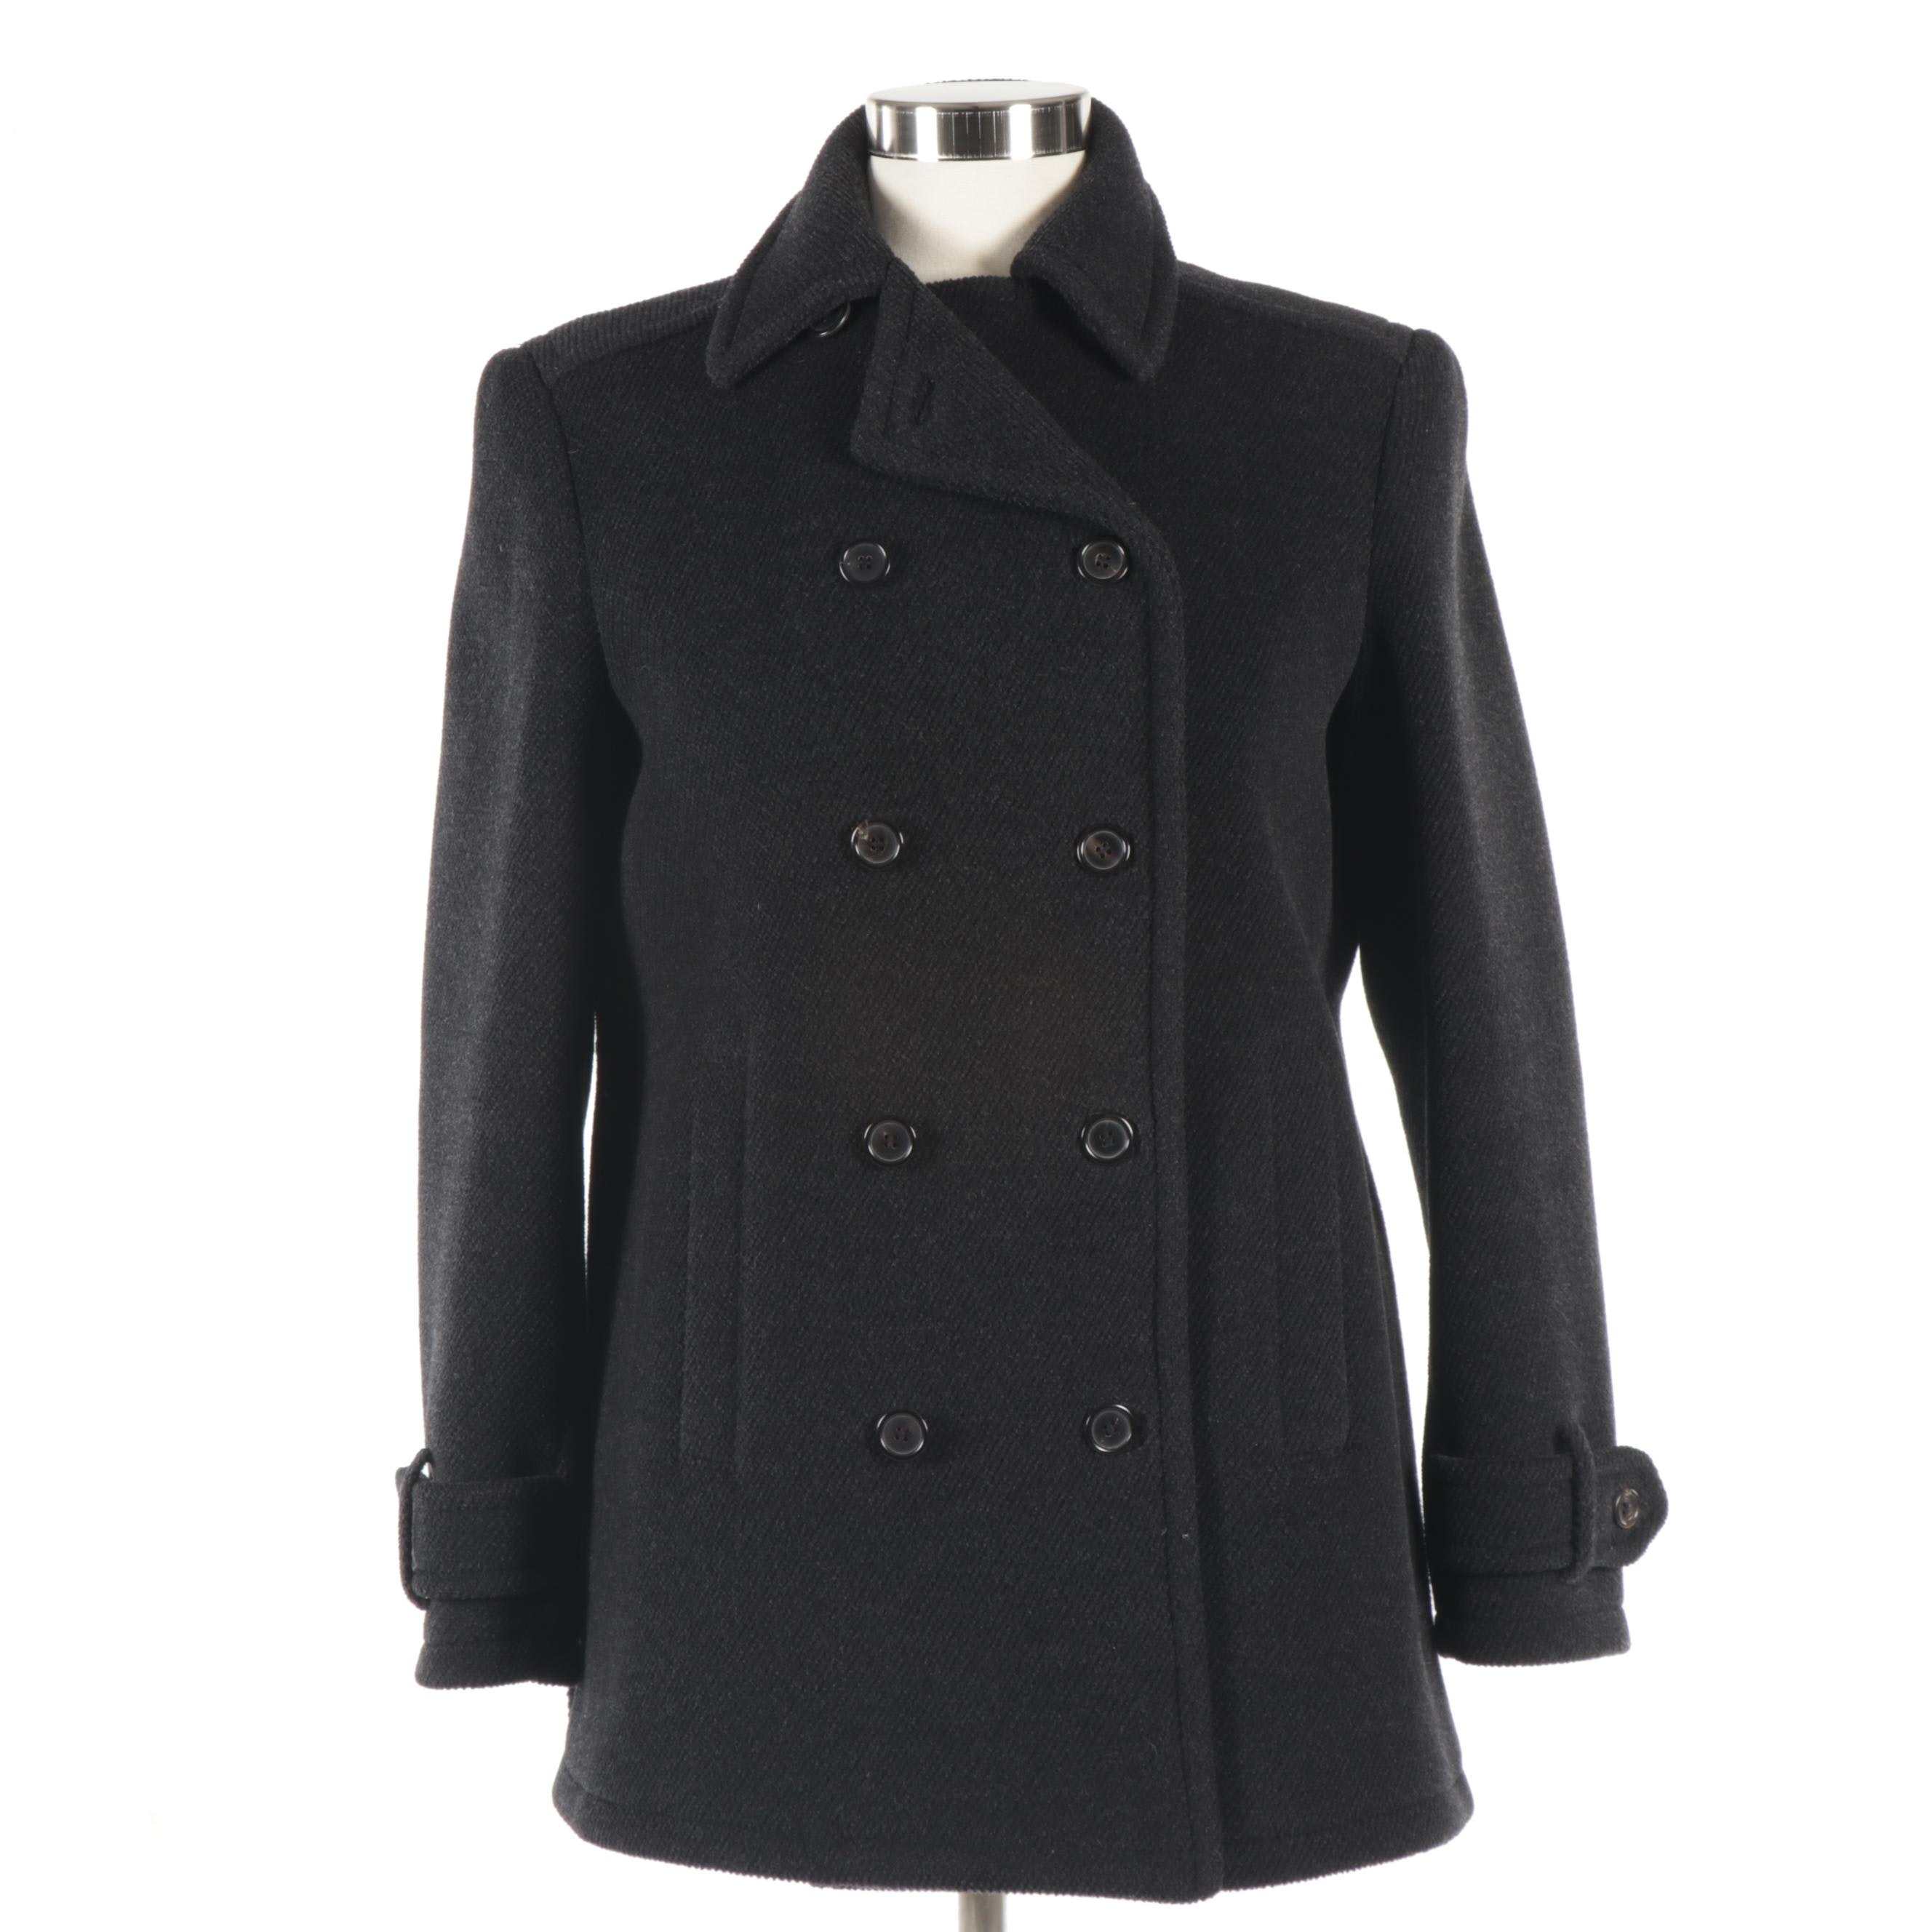 Women's Prada Charcoal Wool Double-Breasted Jacket, Made in Italy